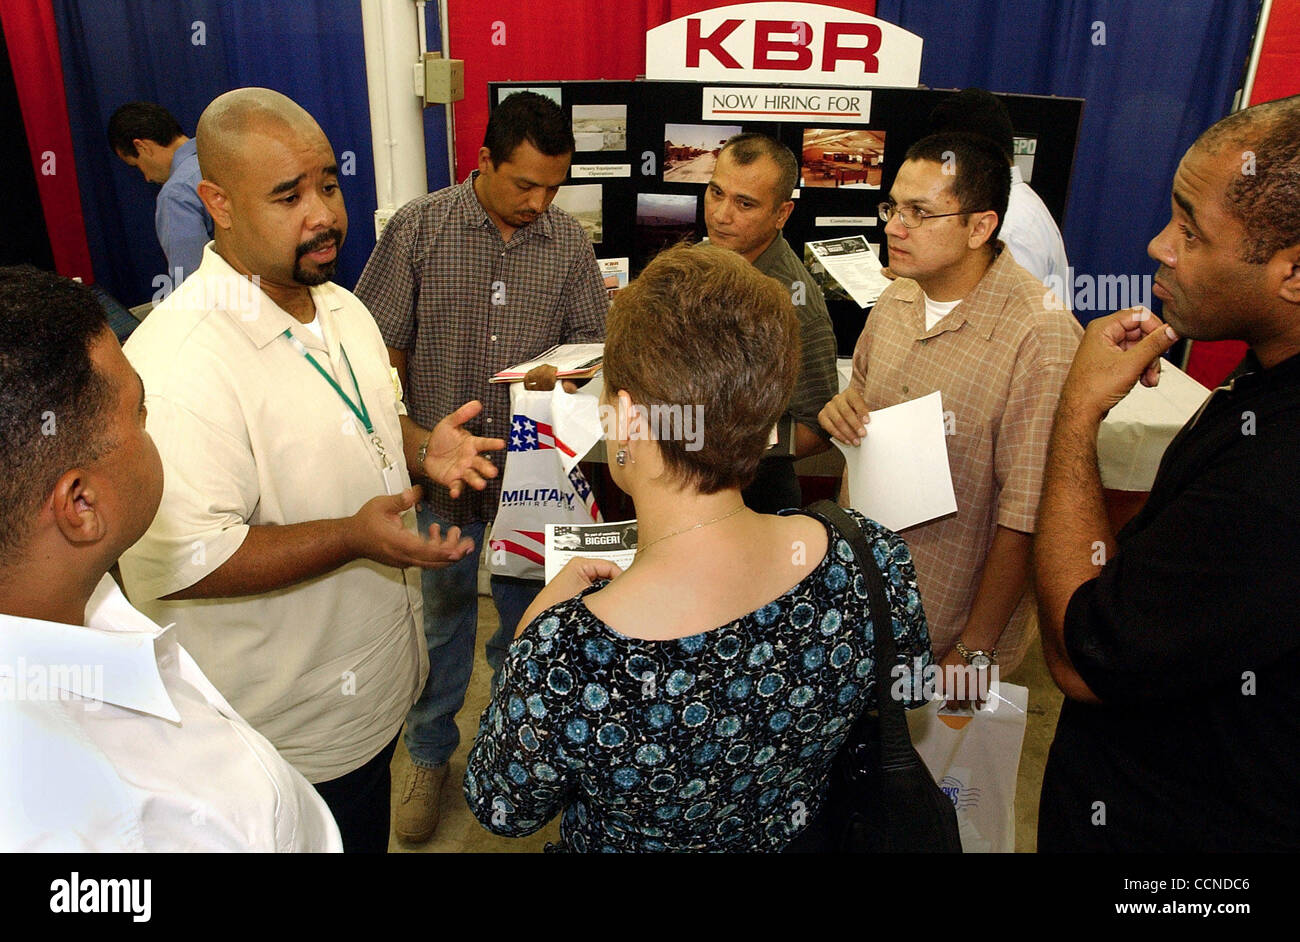 BUSINESS Tony Rico, recruiter for KBR, the engineering and